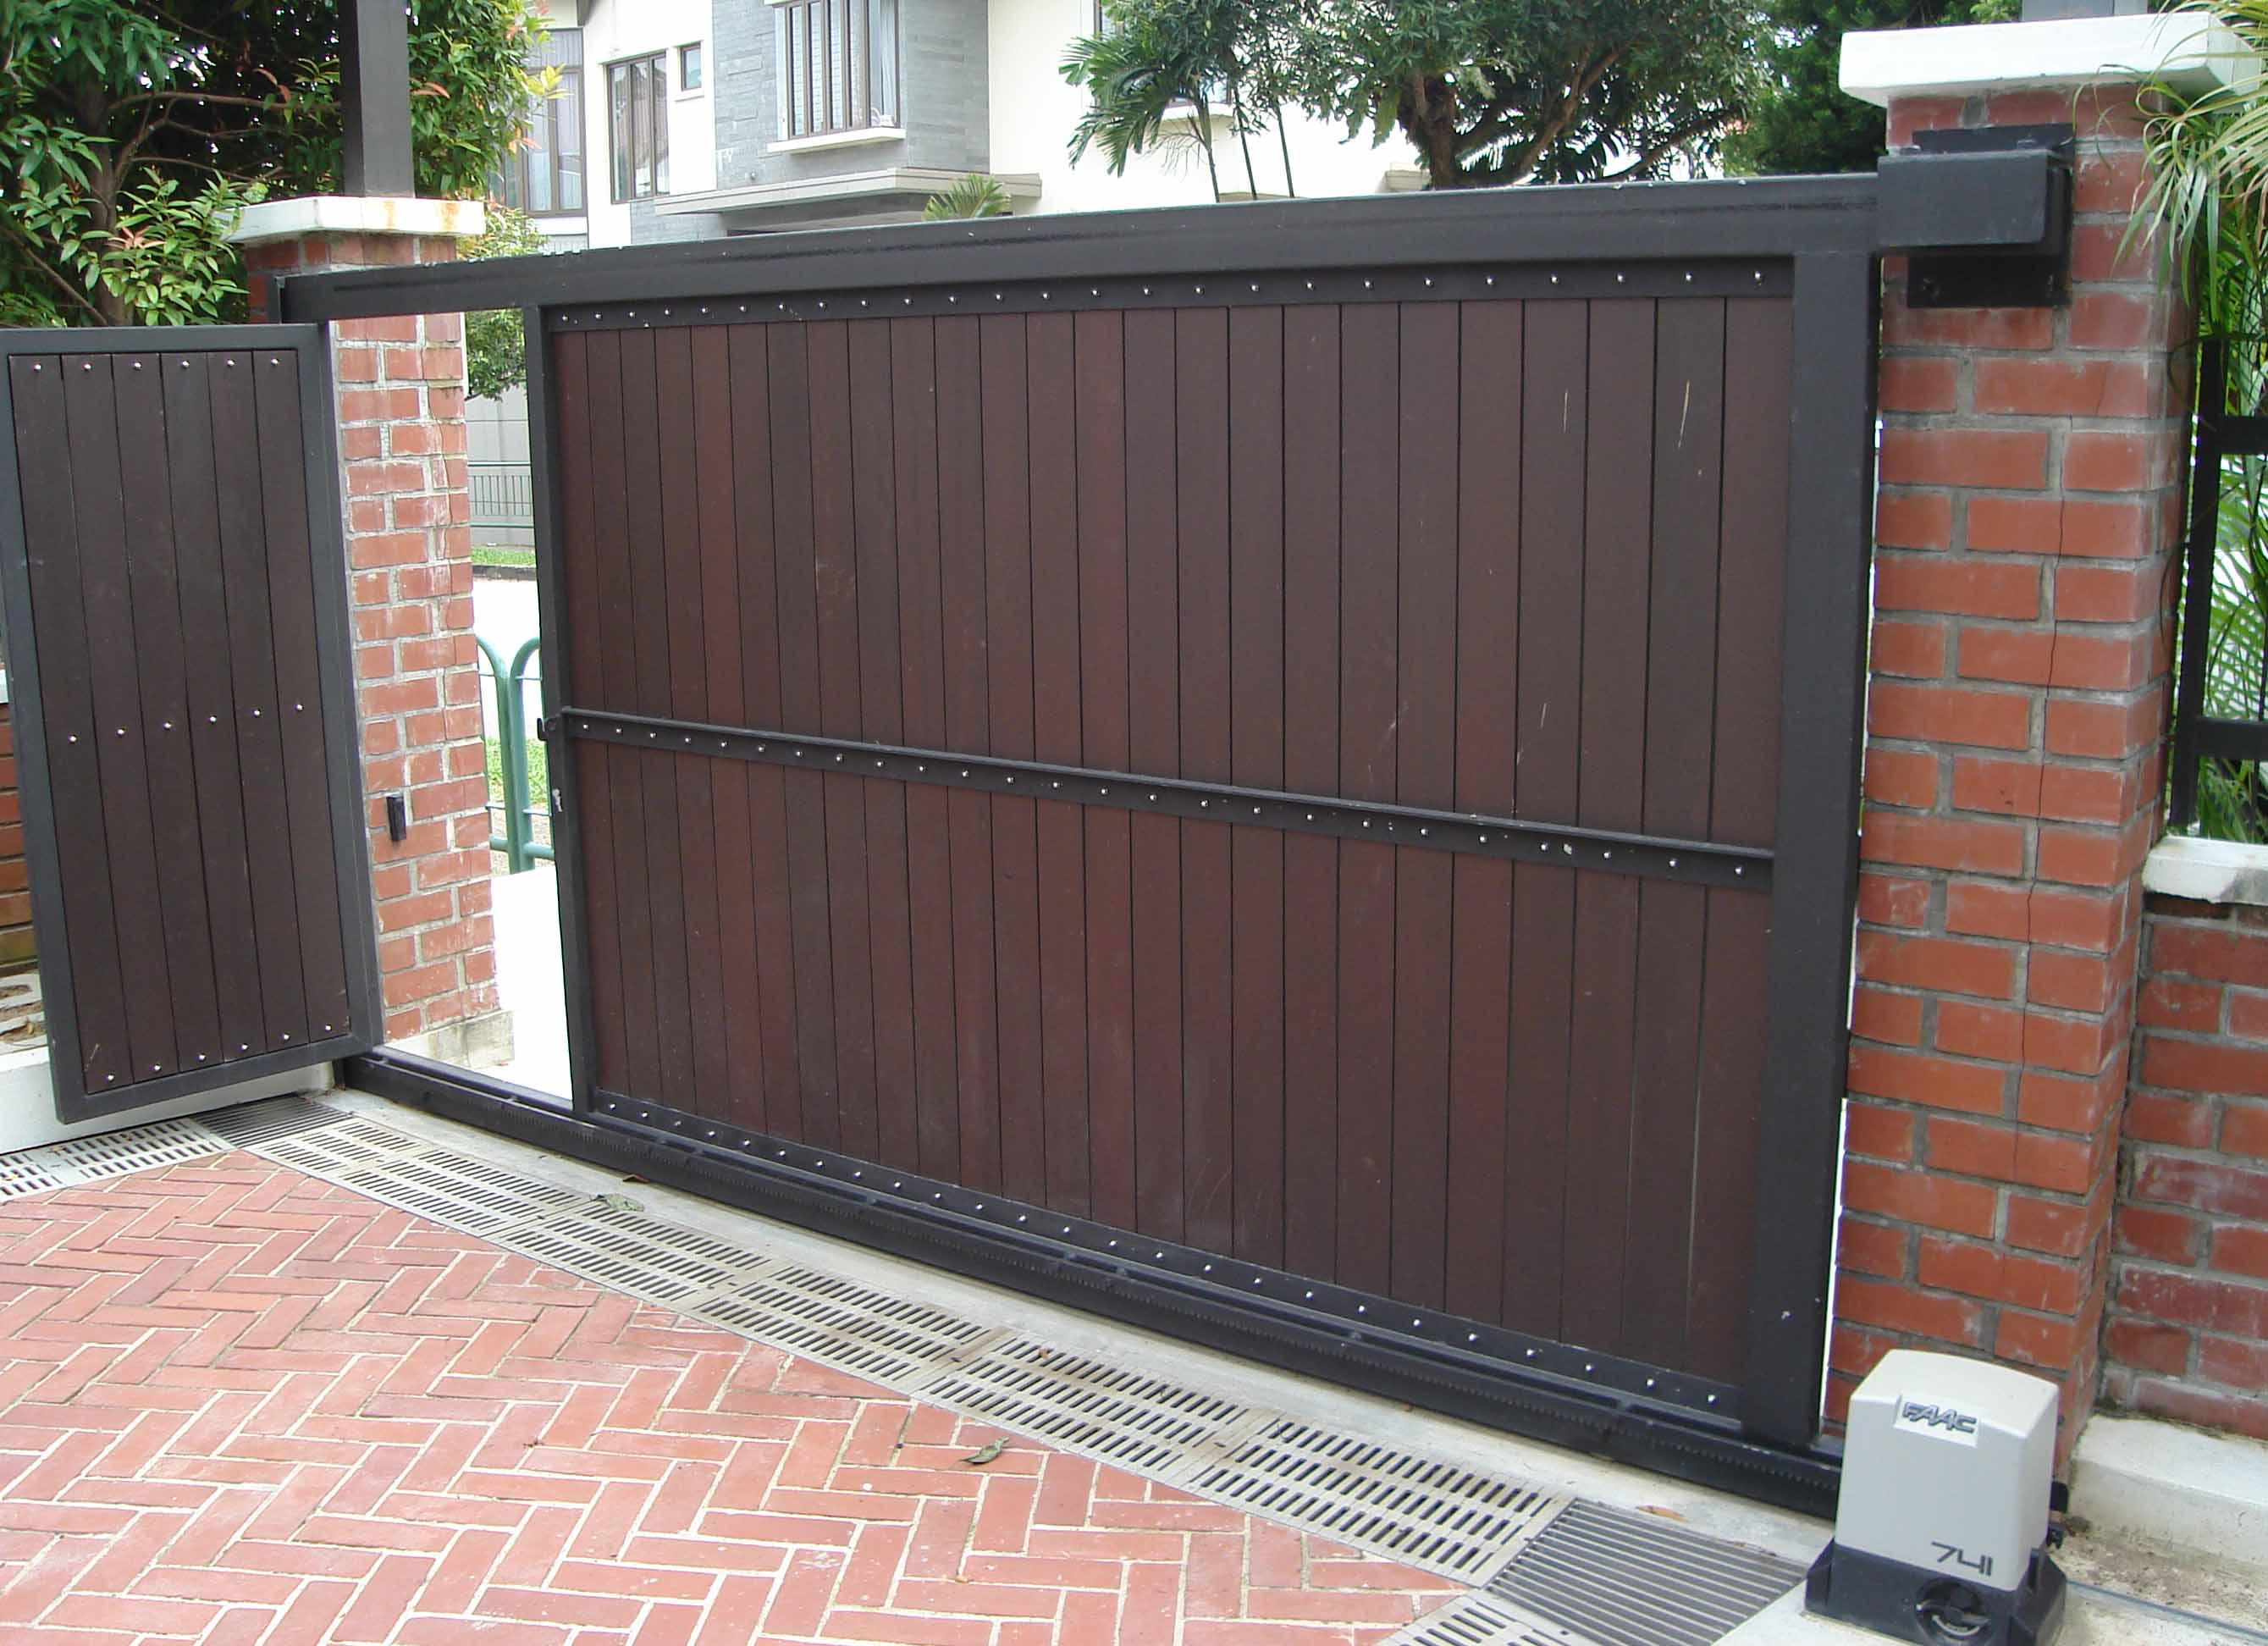 Automatic Gates Openers Residential Phoenix Gate Automation Fence Contractors For Commercial Or